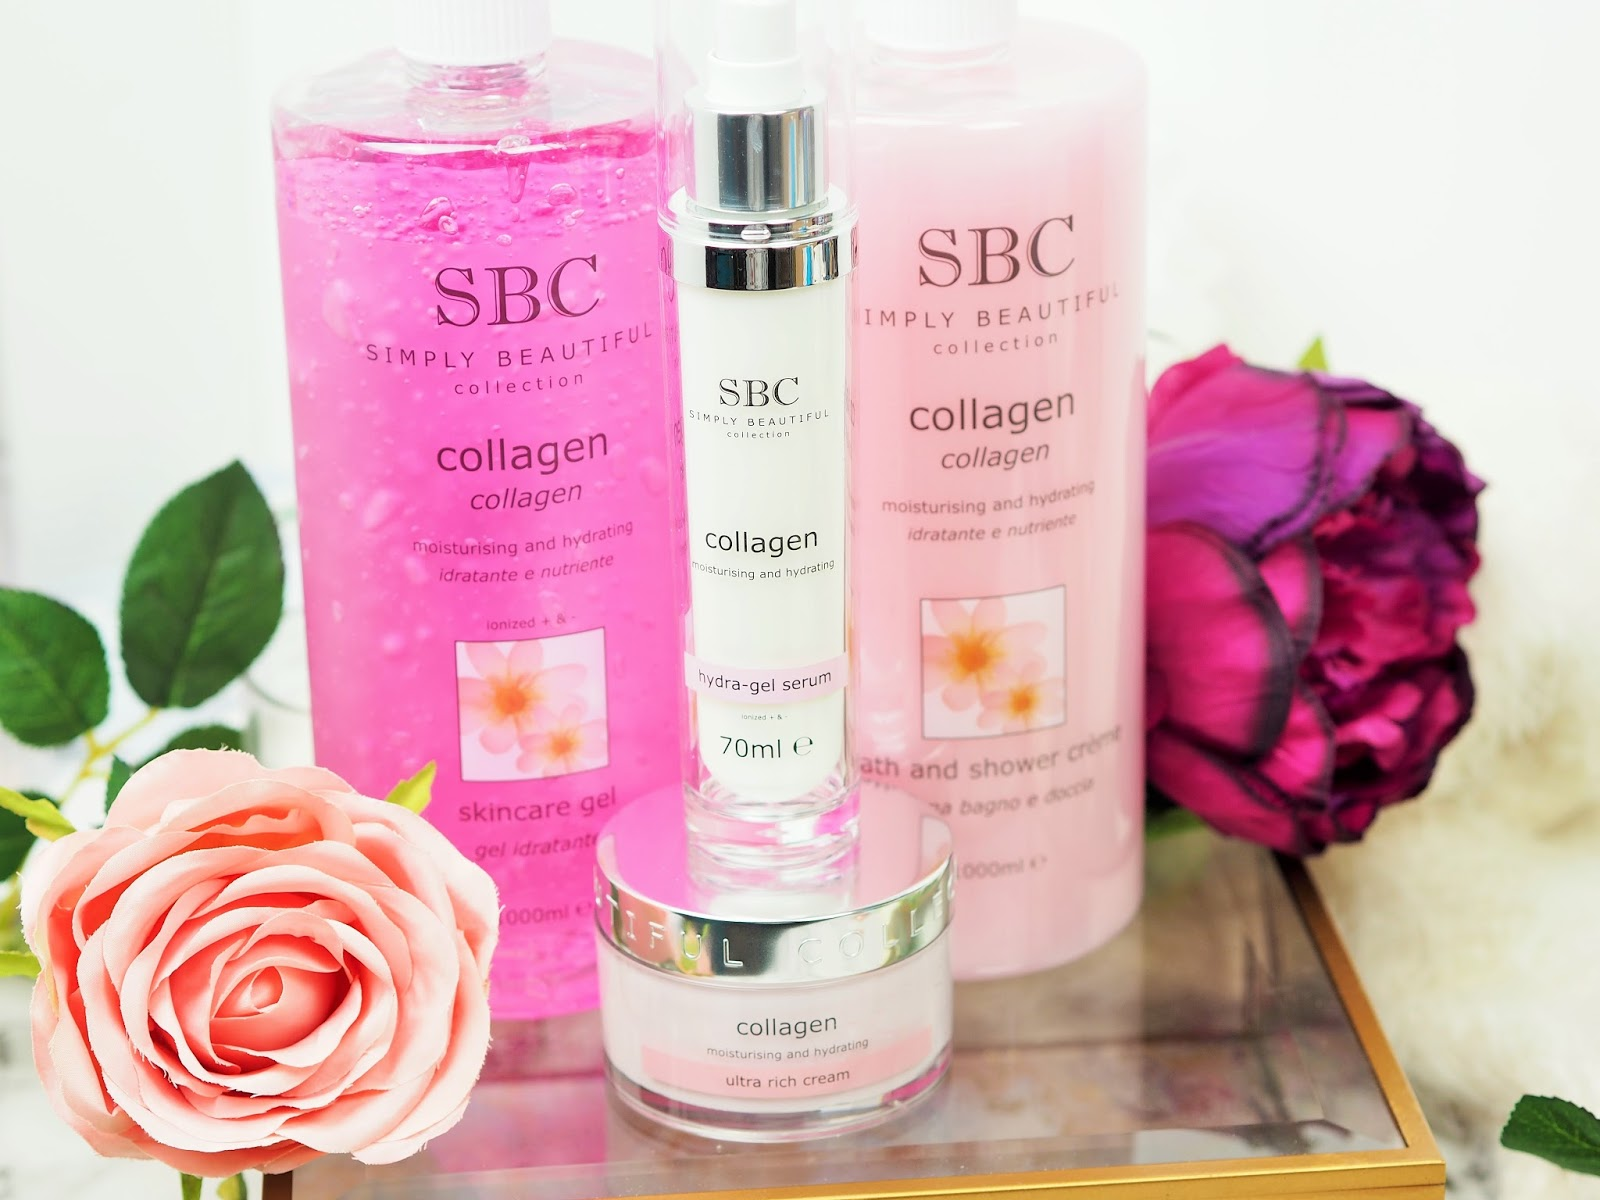 The Collagen Collection - SBC